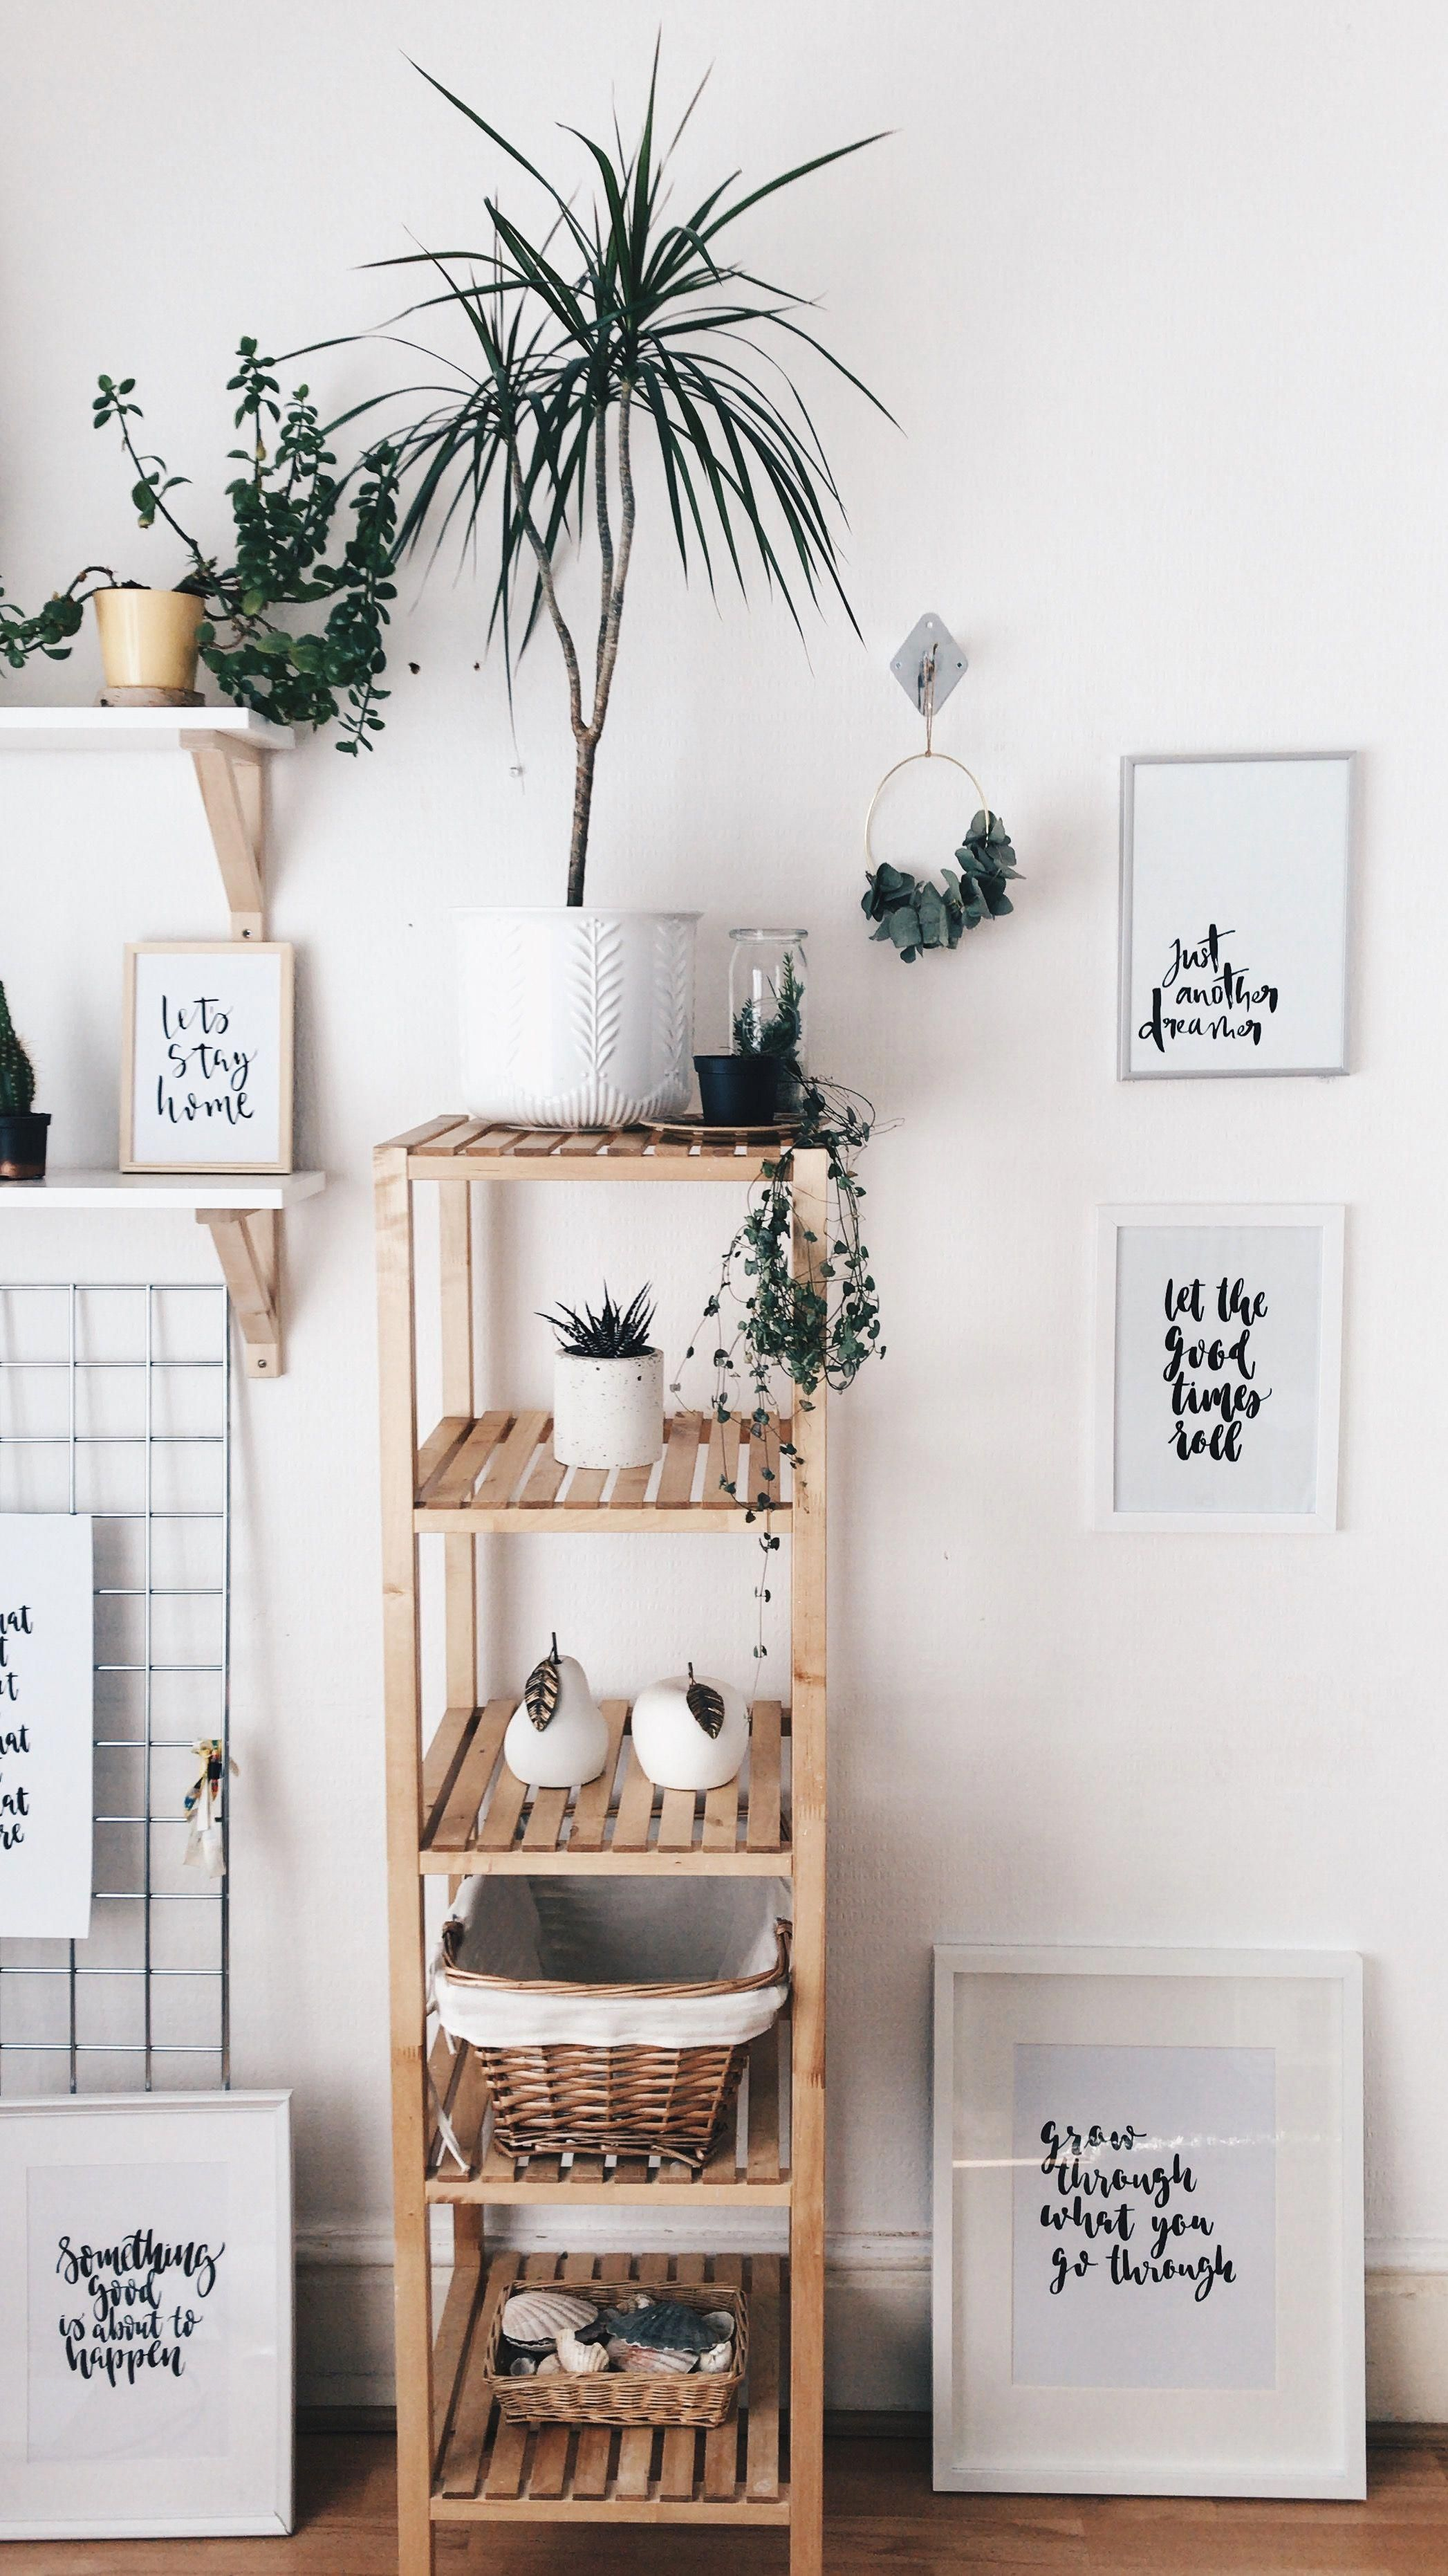 Home Decor Ideas For Plant And Art Lovers Homedecortipswow